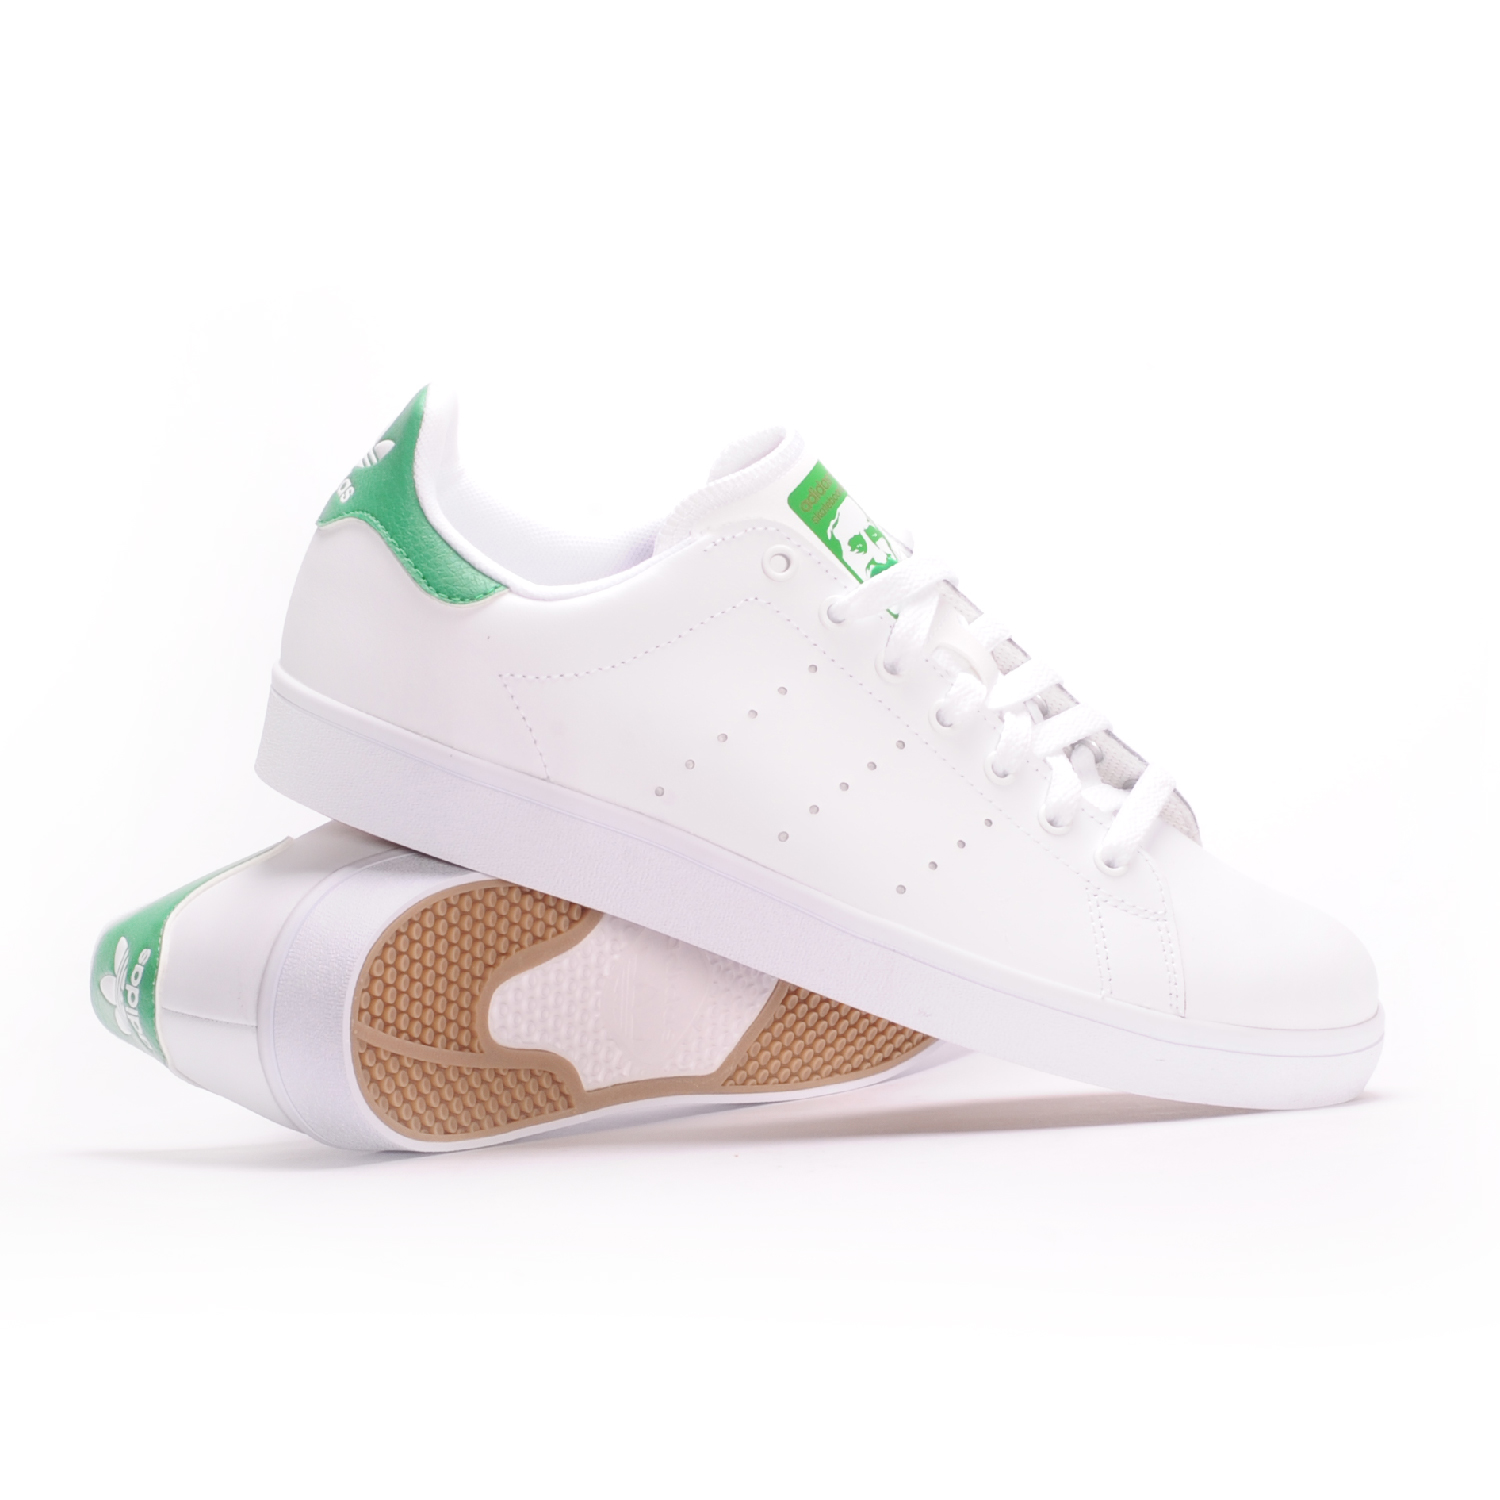 Image is loading Adidas-Stan-Smith-Vulc-White-White-Green-Men-